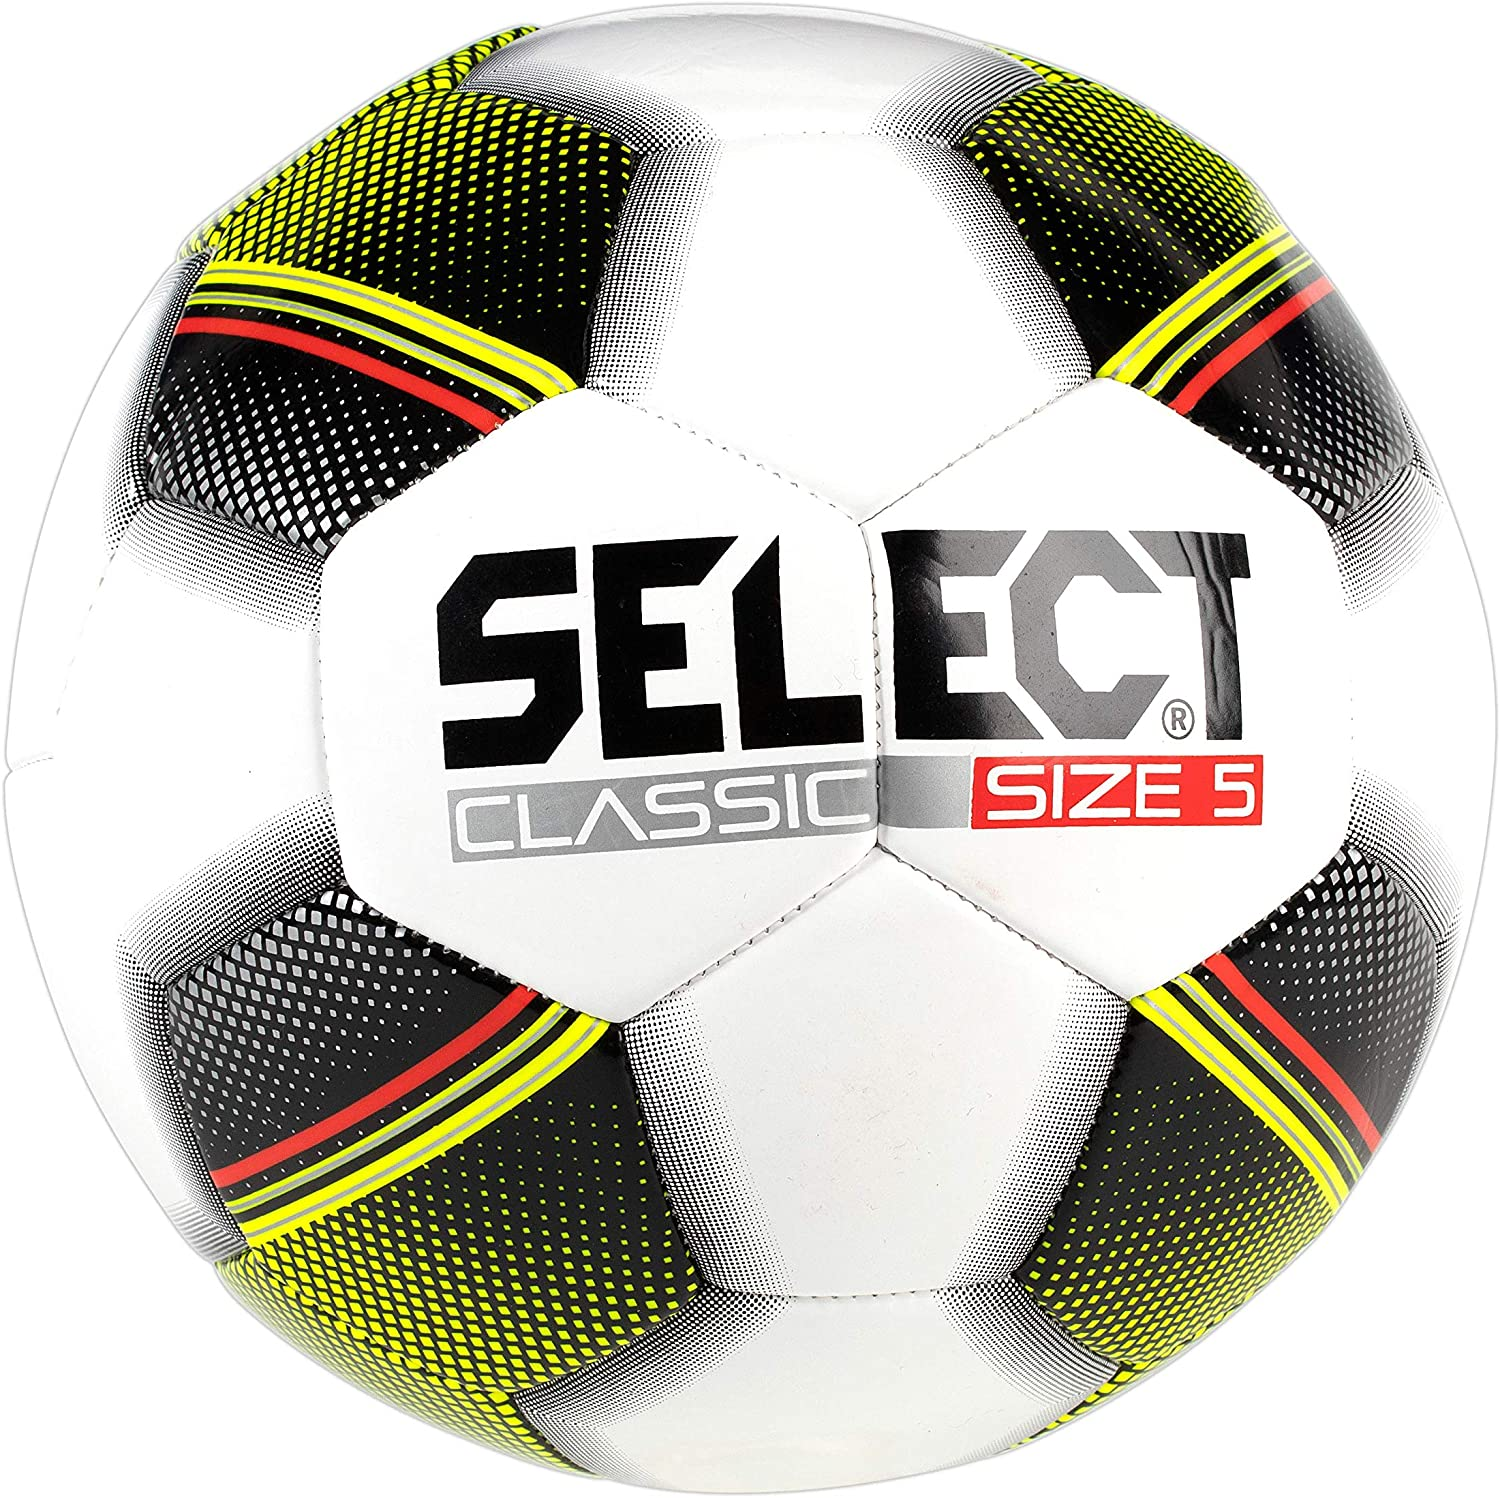 0388588-W Select Classic Soccer Ball Size 5 MAIN